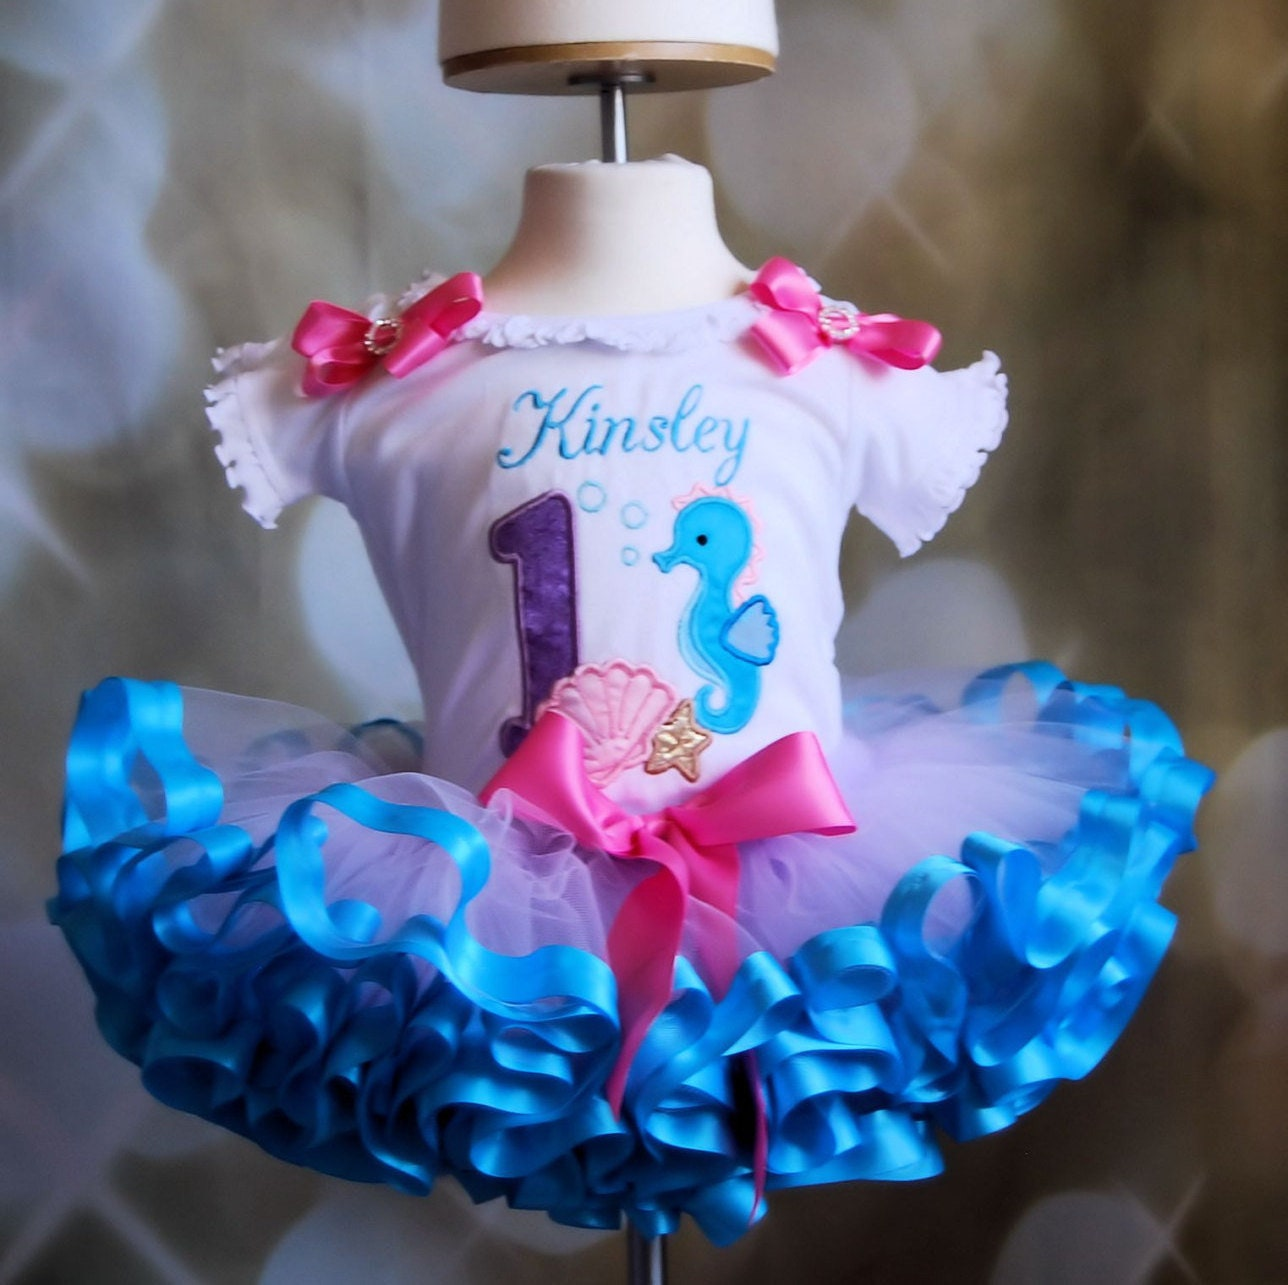 under the sea birthday outfit, first birthday tutu outfit, personalized little mermaid birthday outfit, cake smash outfit girl, nautical